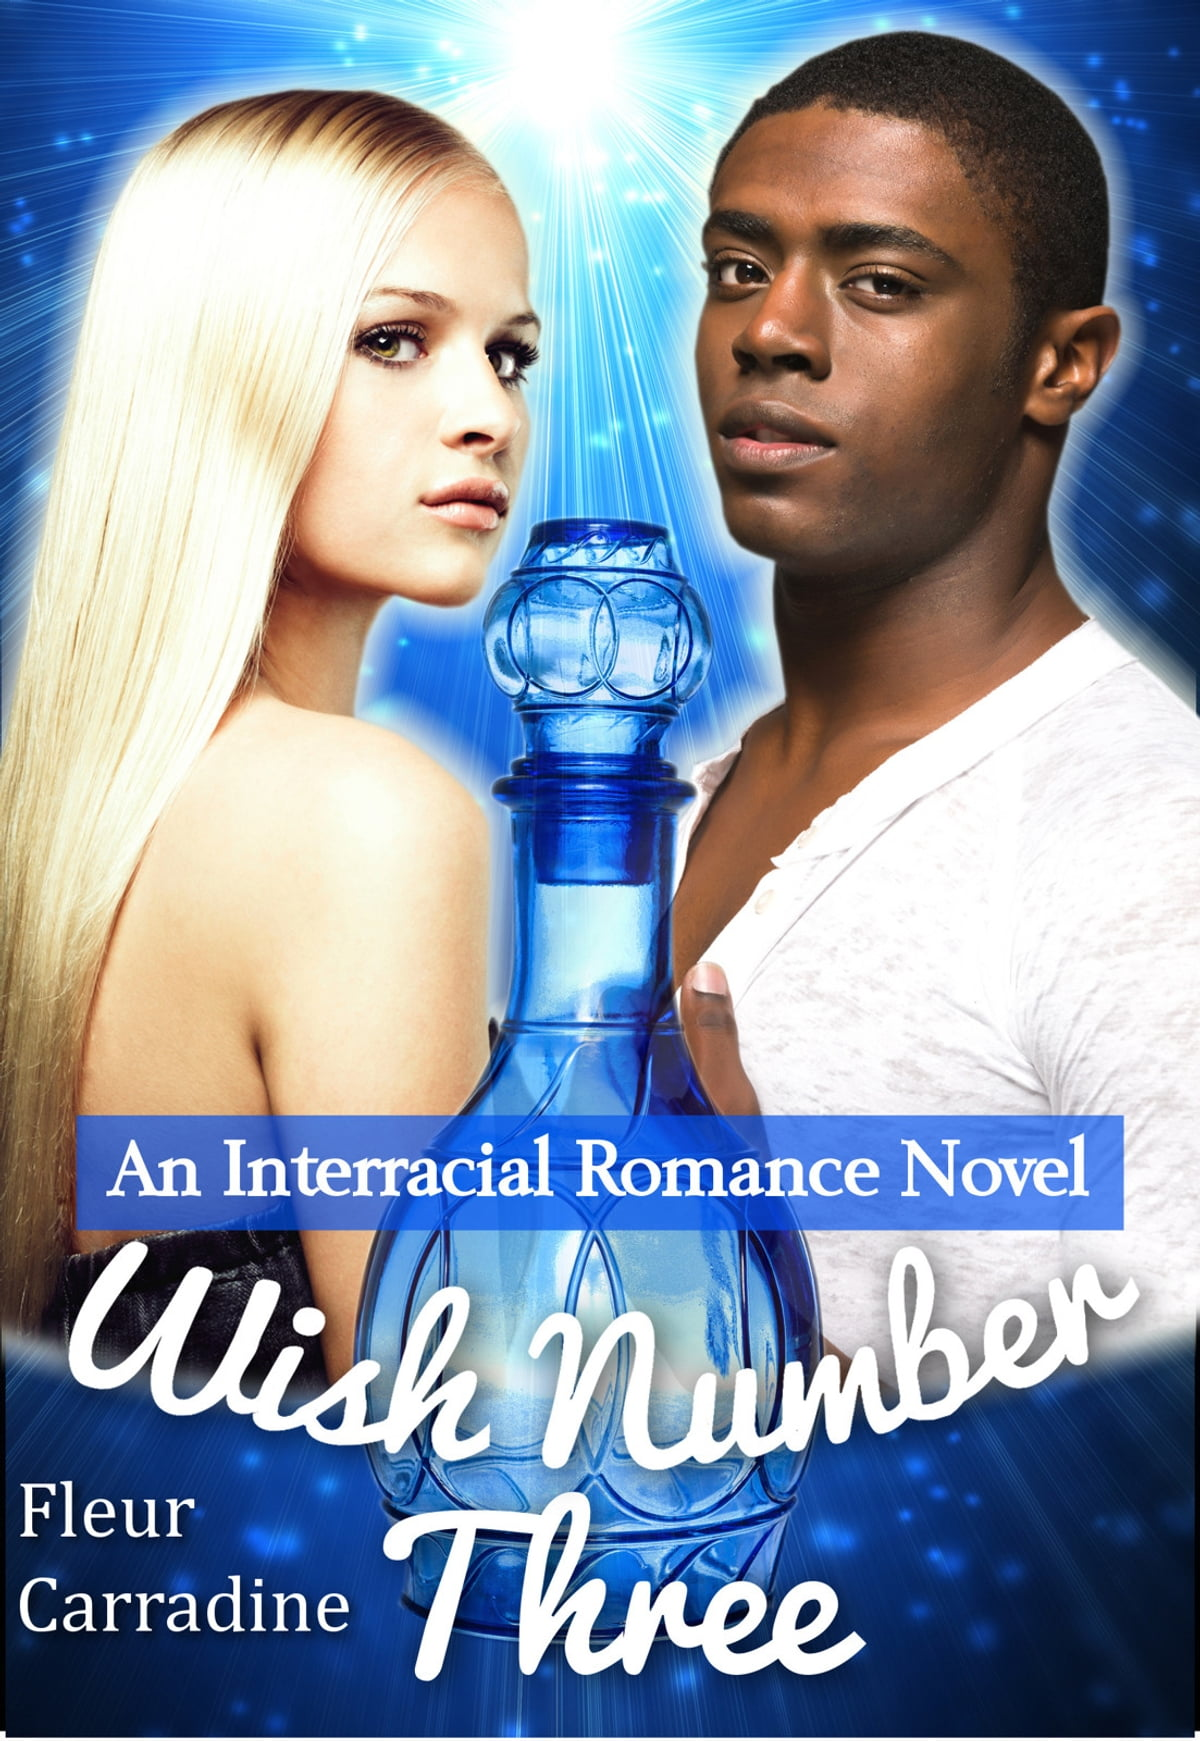 Thought differently, interracial romance writer question think